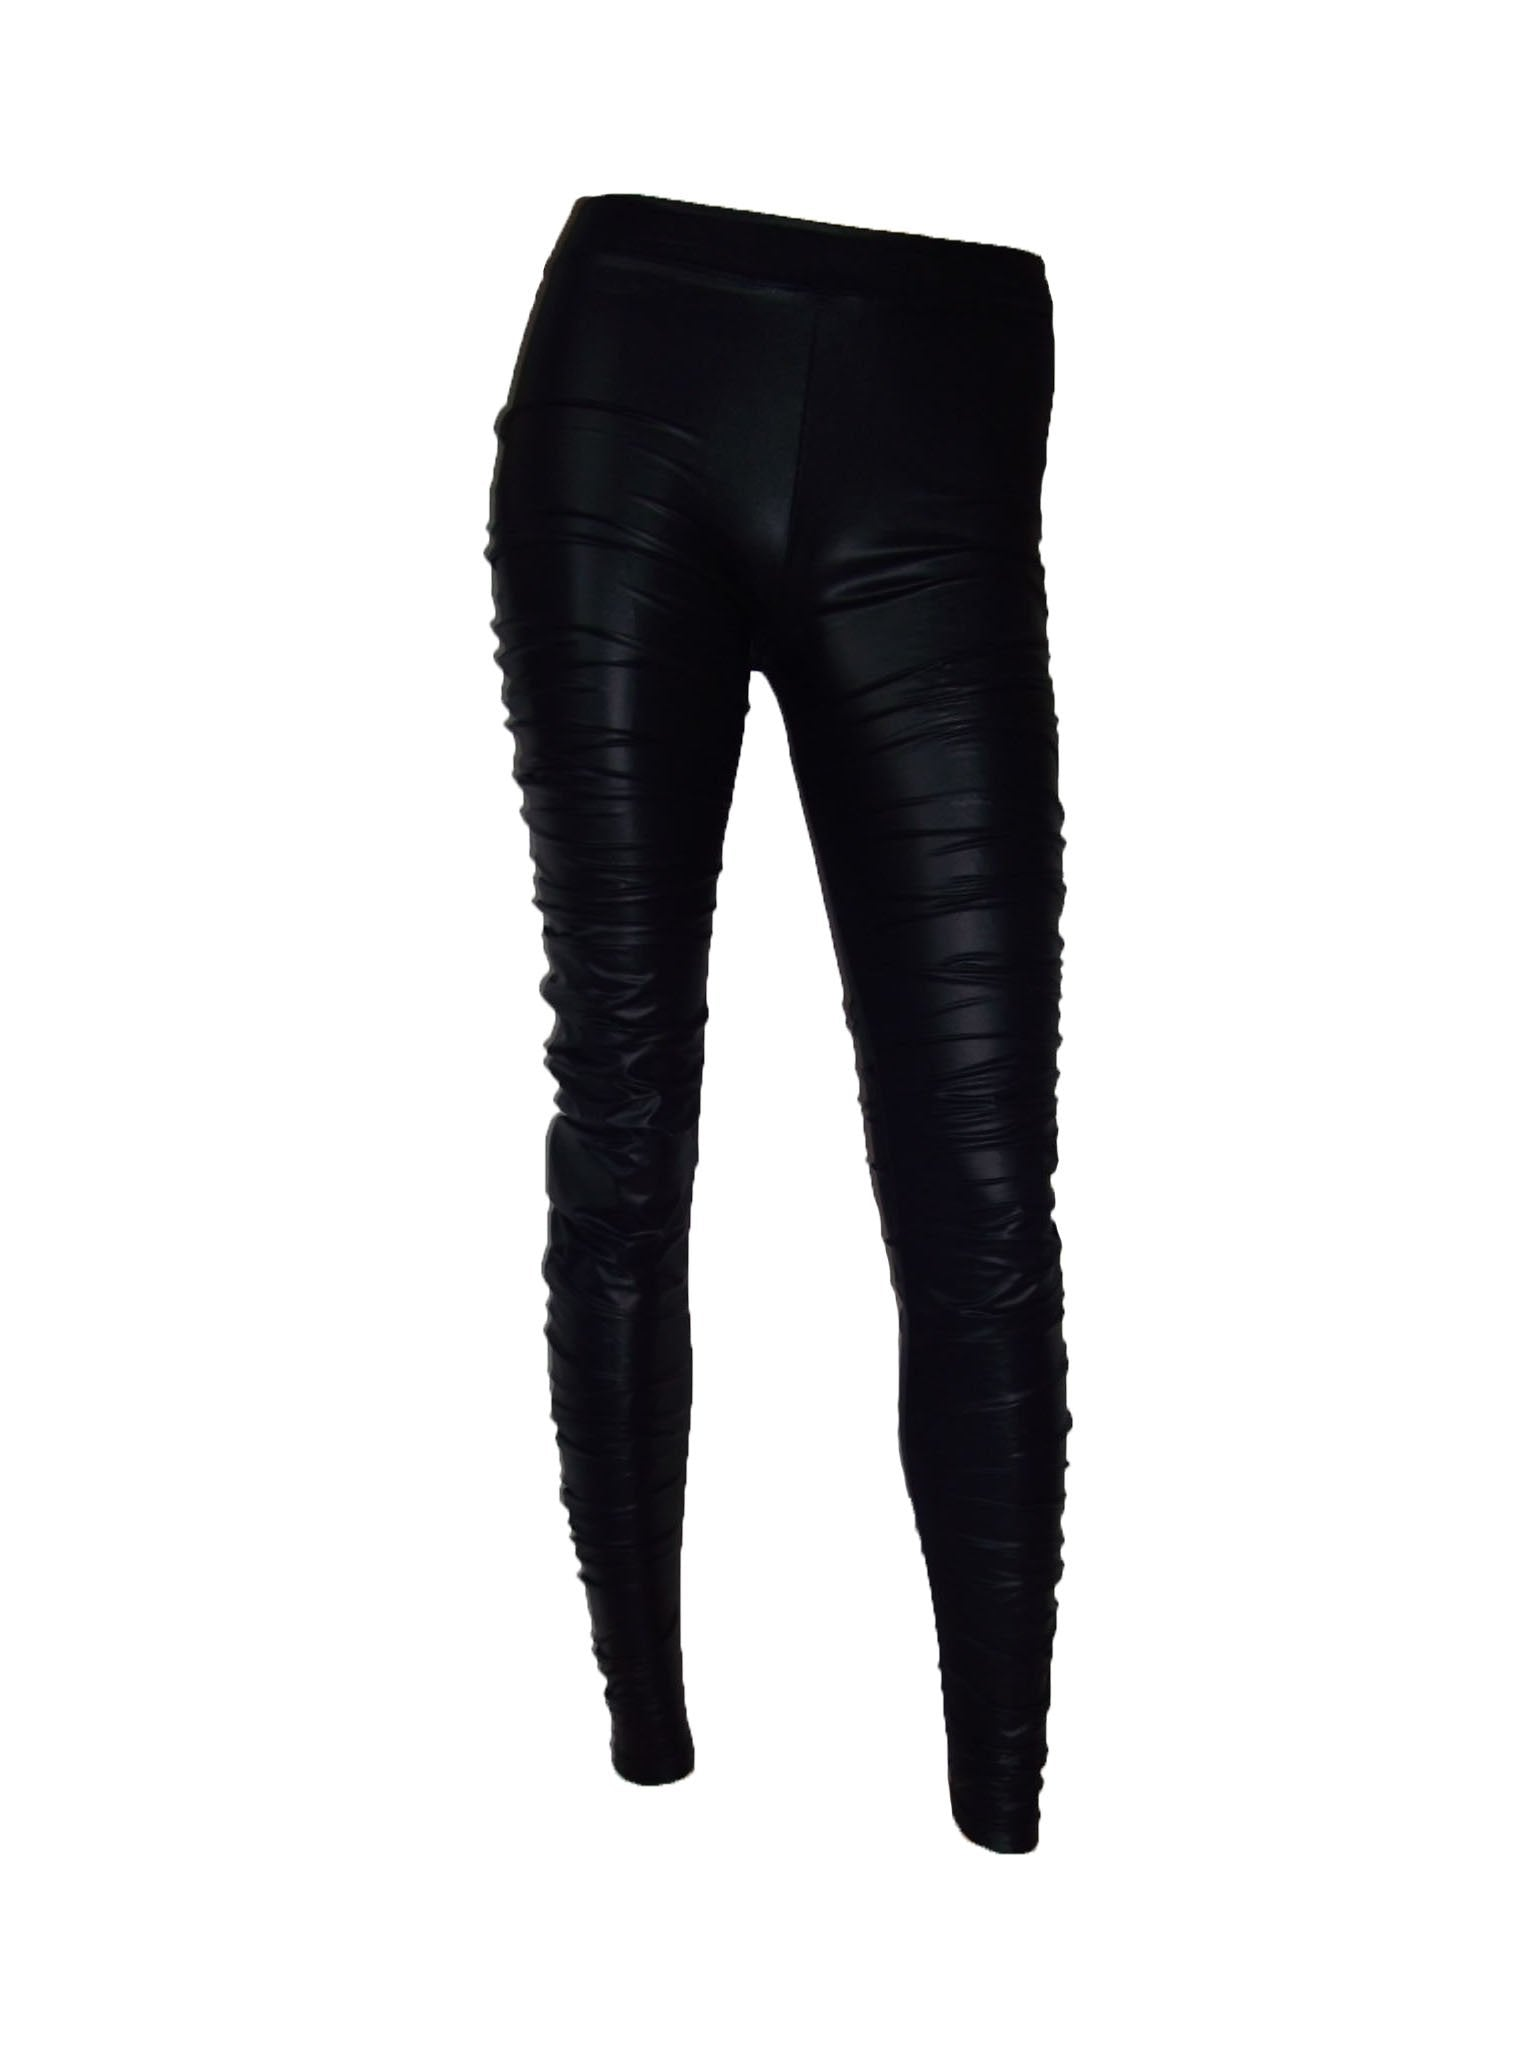 Leather look leggings Sexy tights Black high waist pants